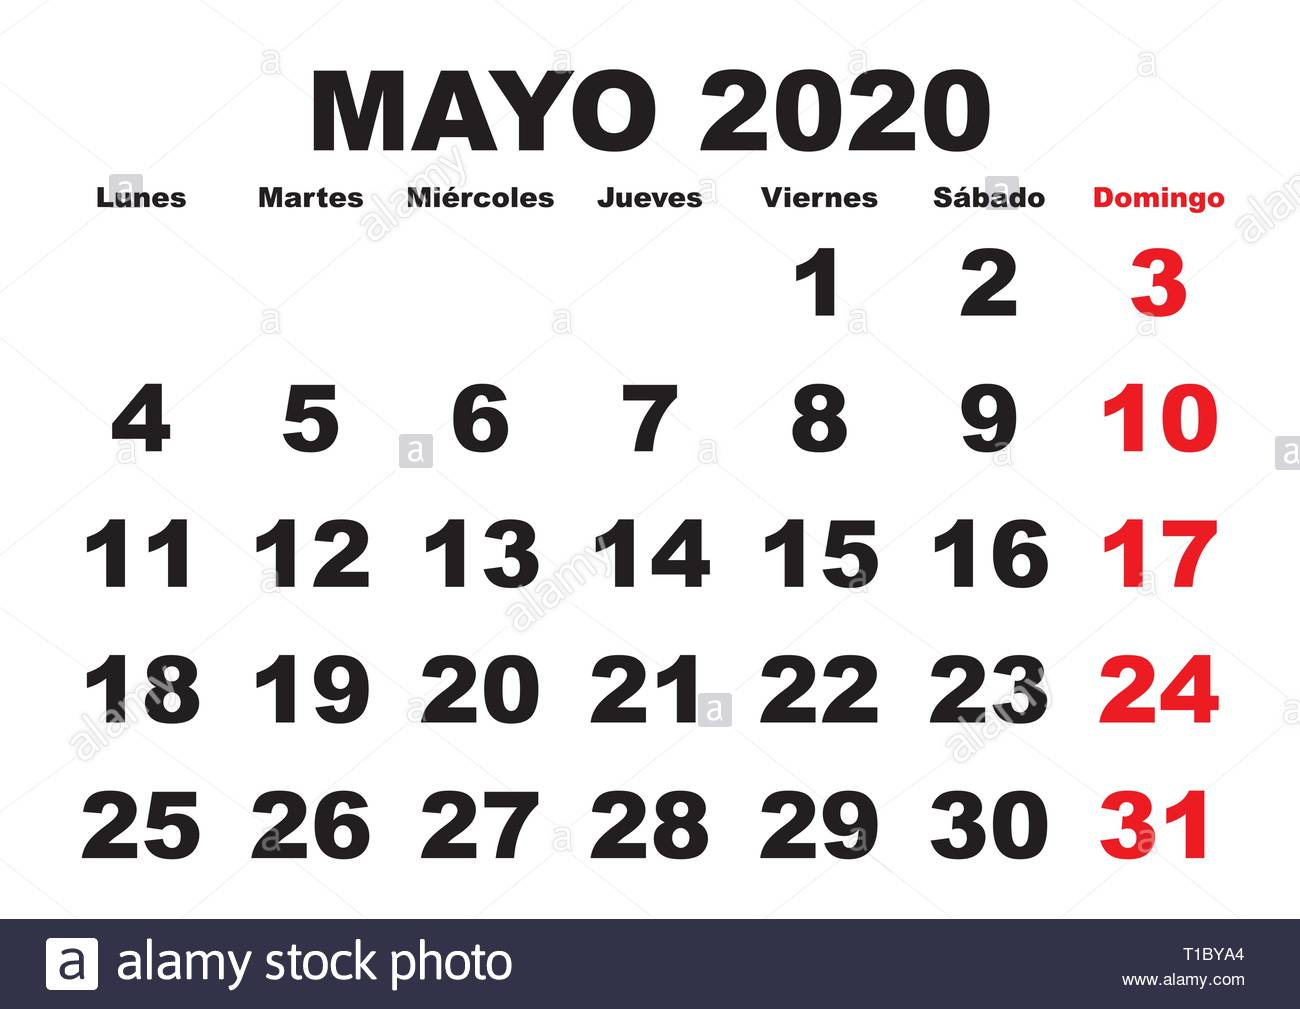 Mayo Calendario 2020.May Month In A Year 2020 Wall Calendar In Spanish Mayo 2020